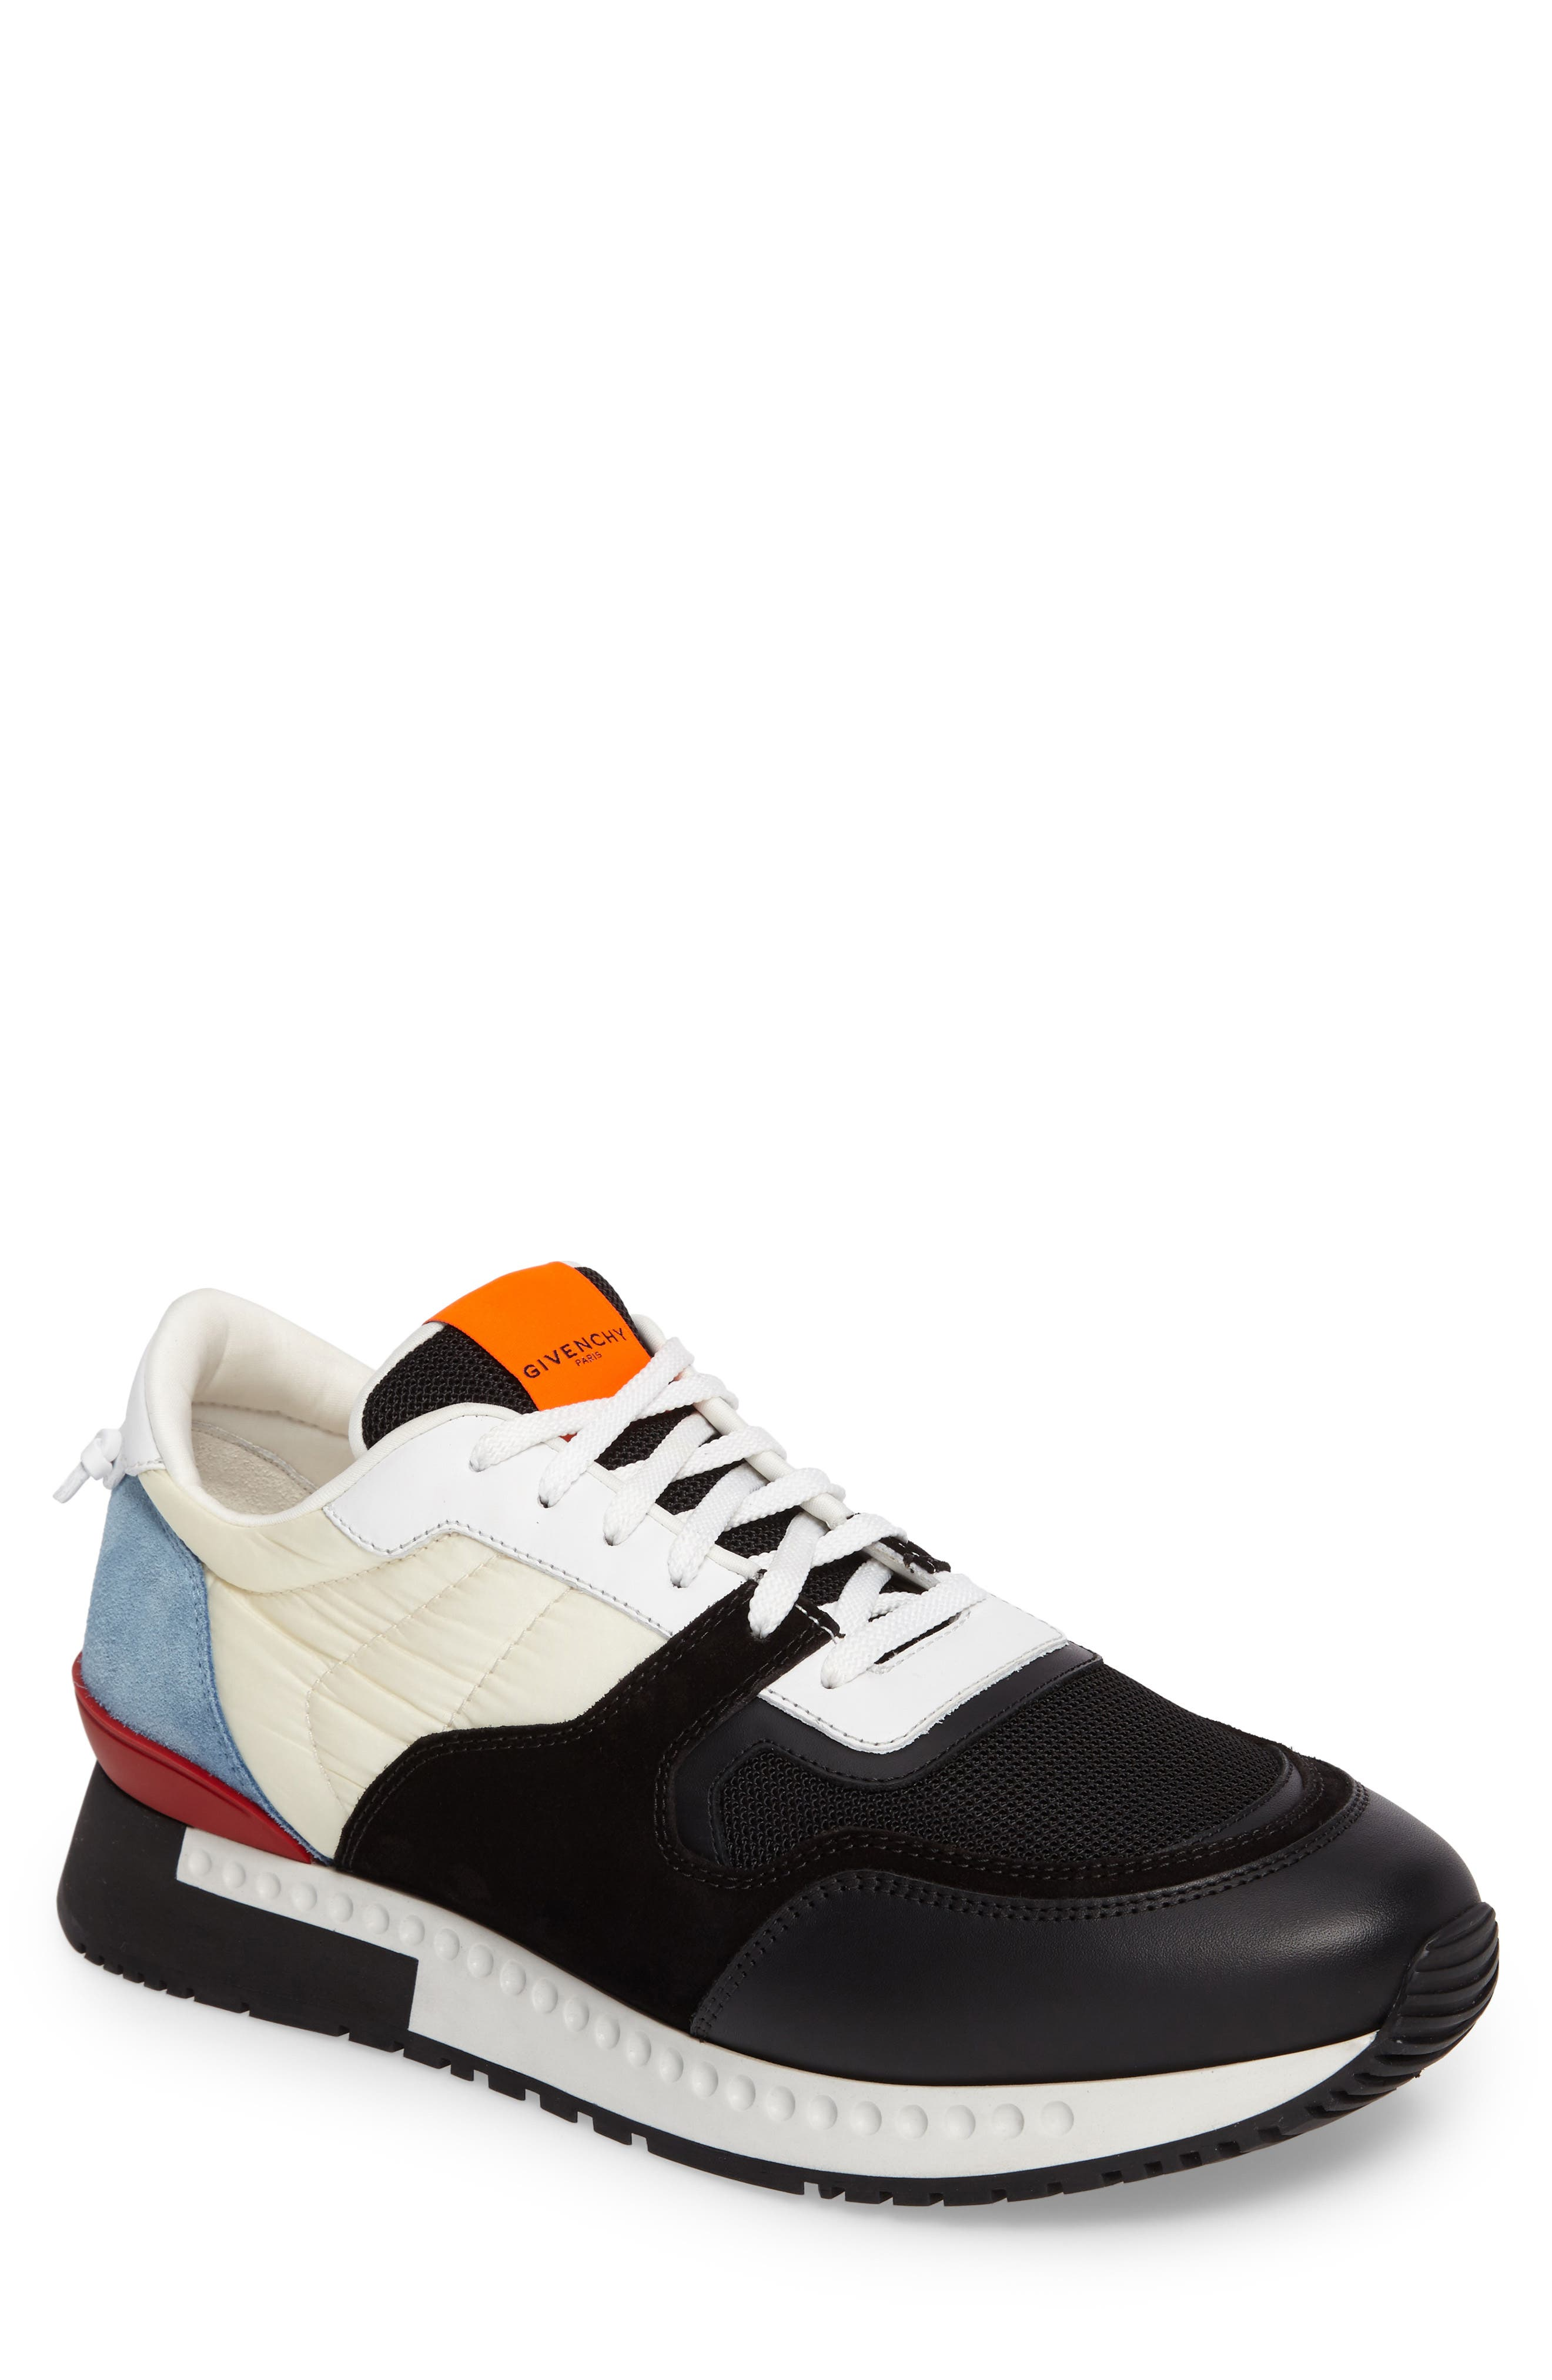 Main Image - Givenchy 'Active Runner' Sneaker (Men)